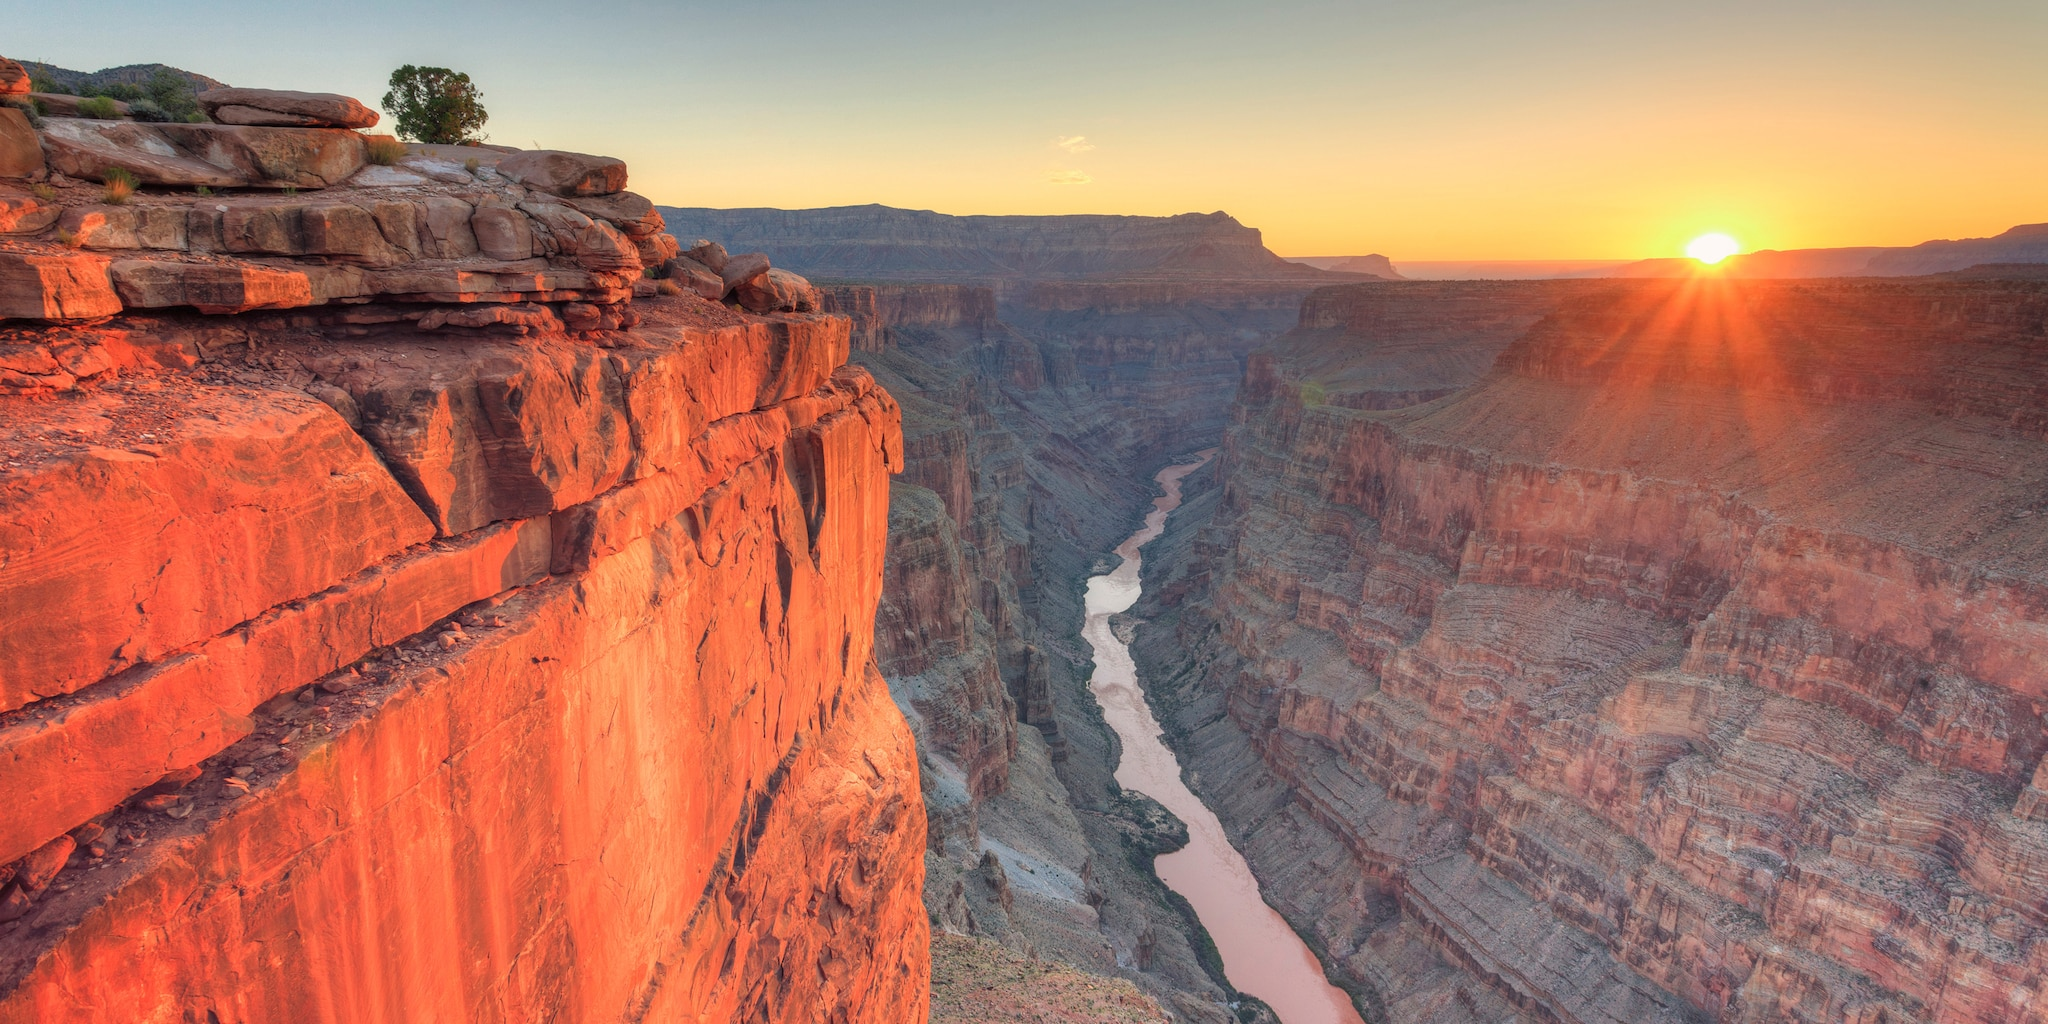 The sun sets over the Grand Canyon's ancient walls